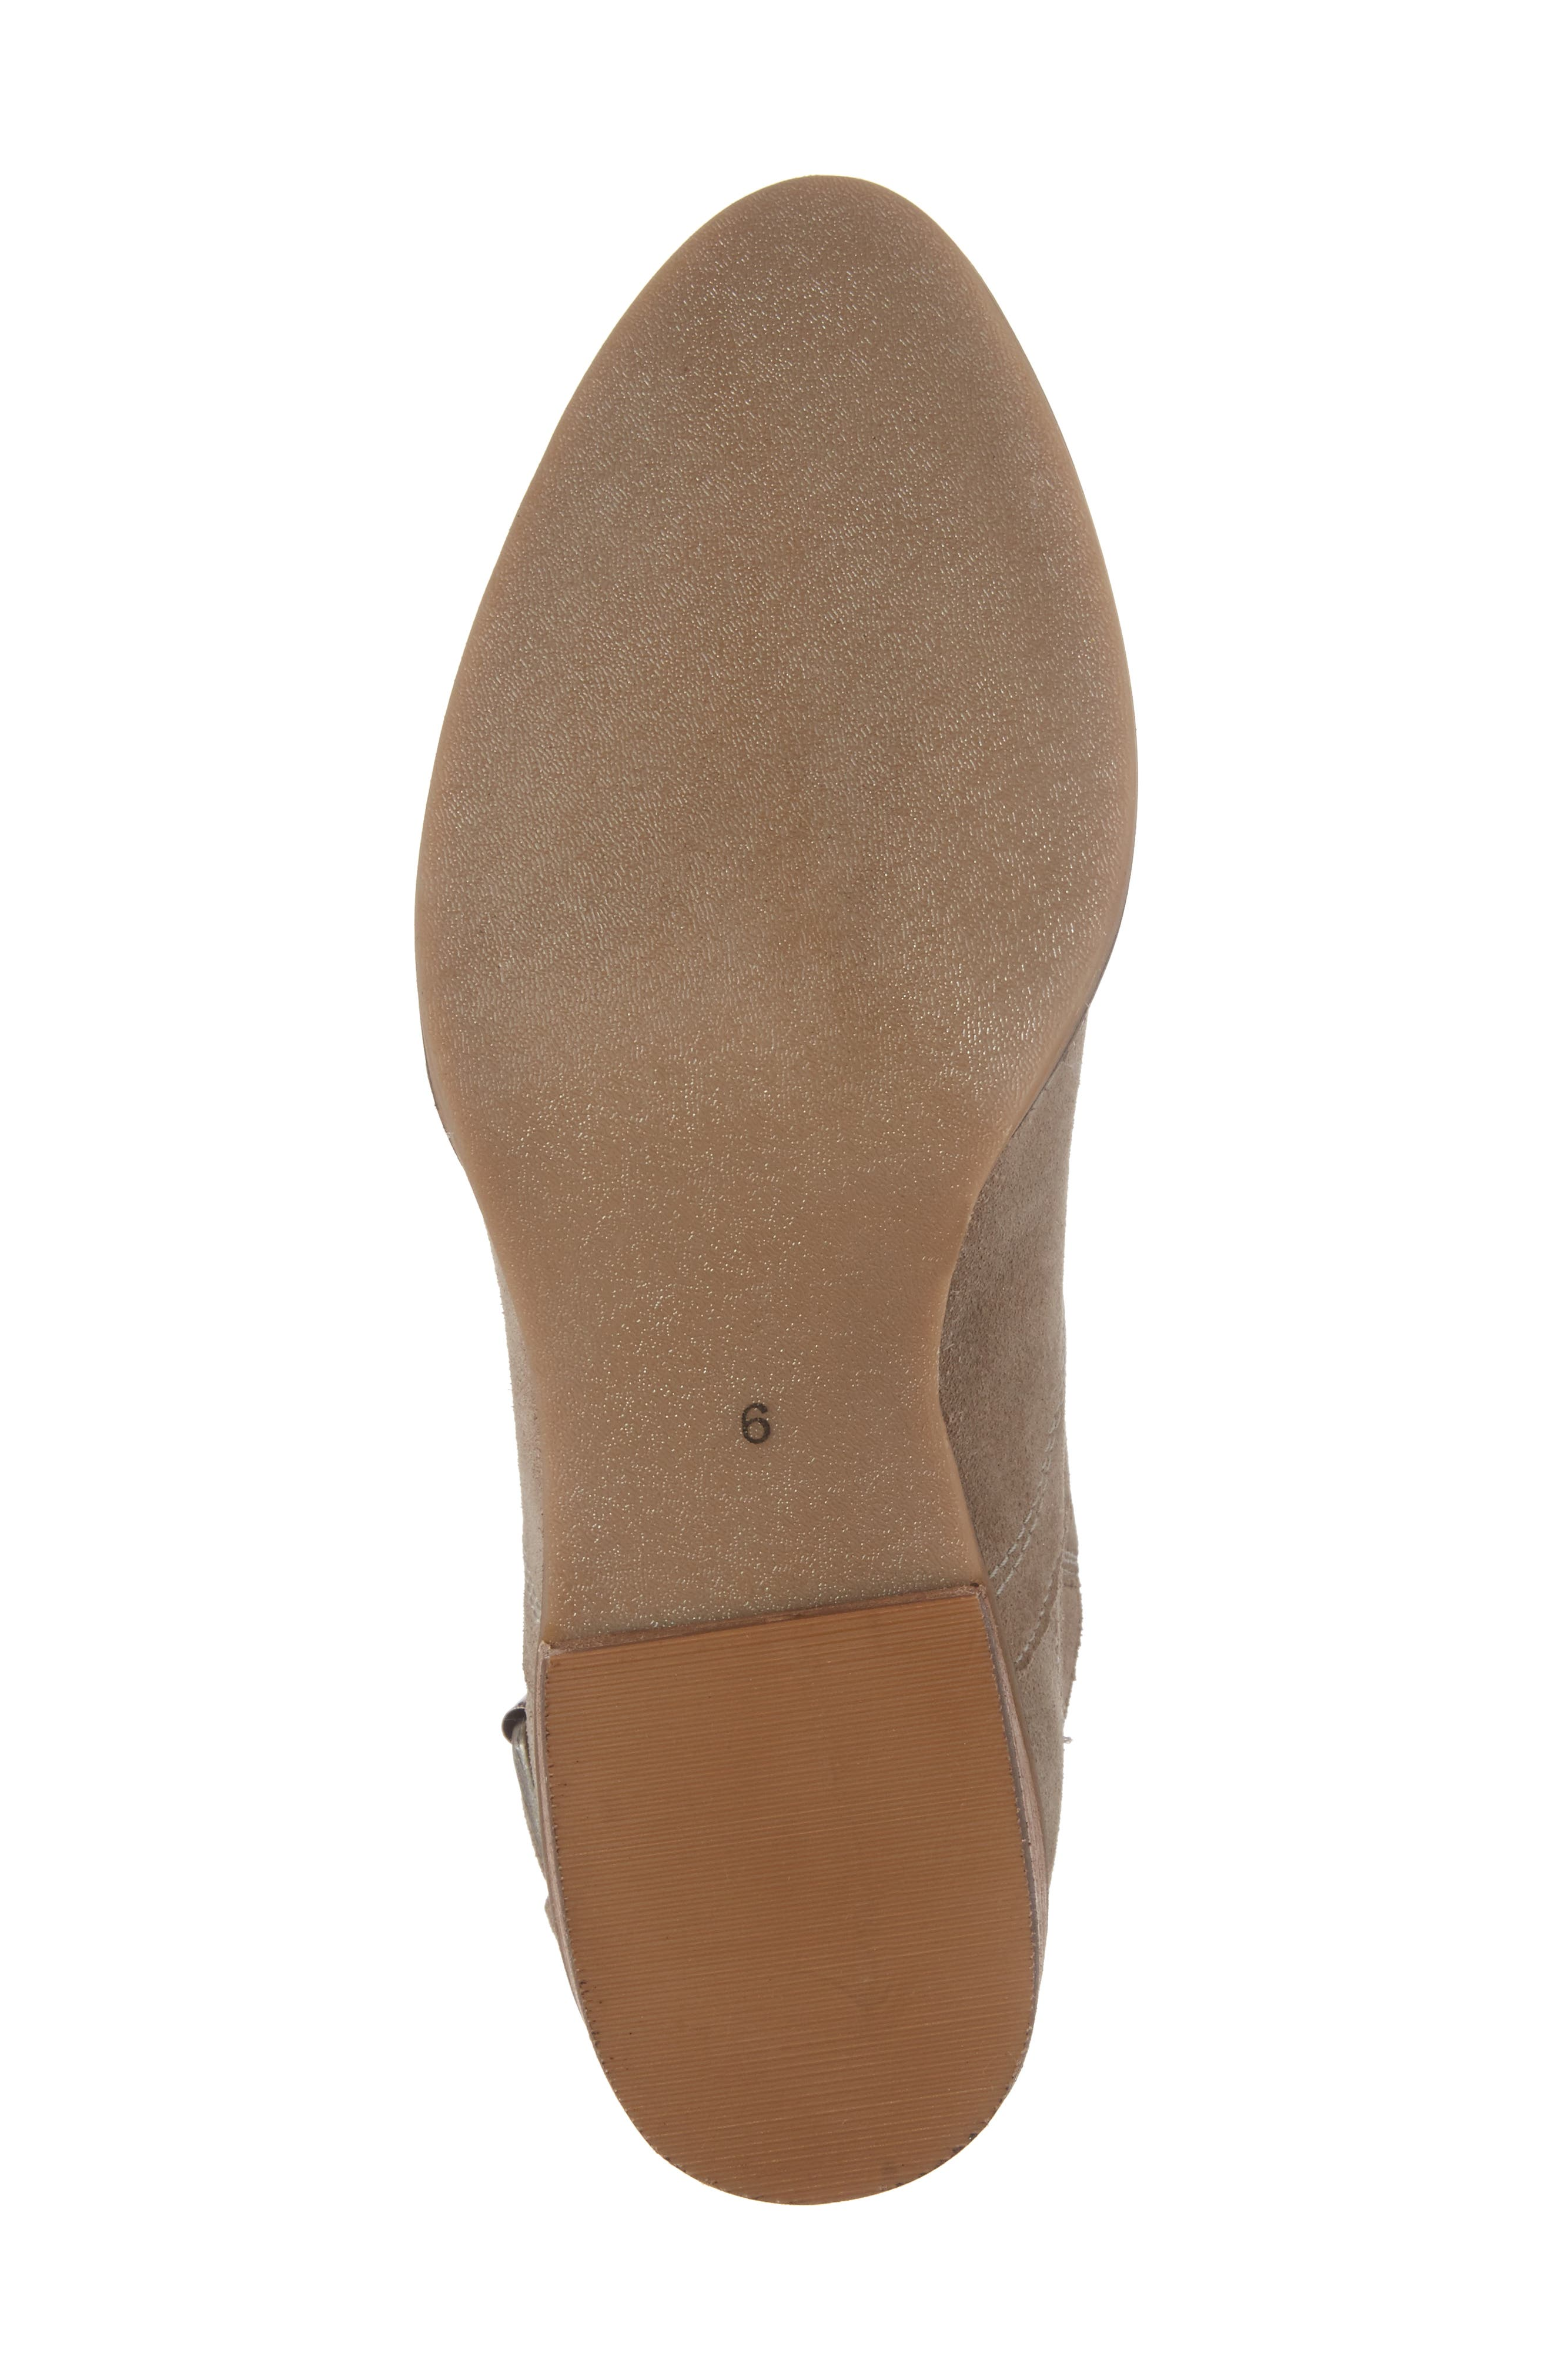 Zoey Perforated Bootie,                             Alternate thumbnail 23, color,